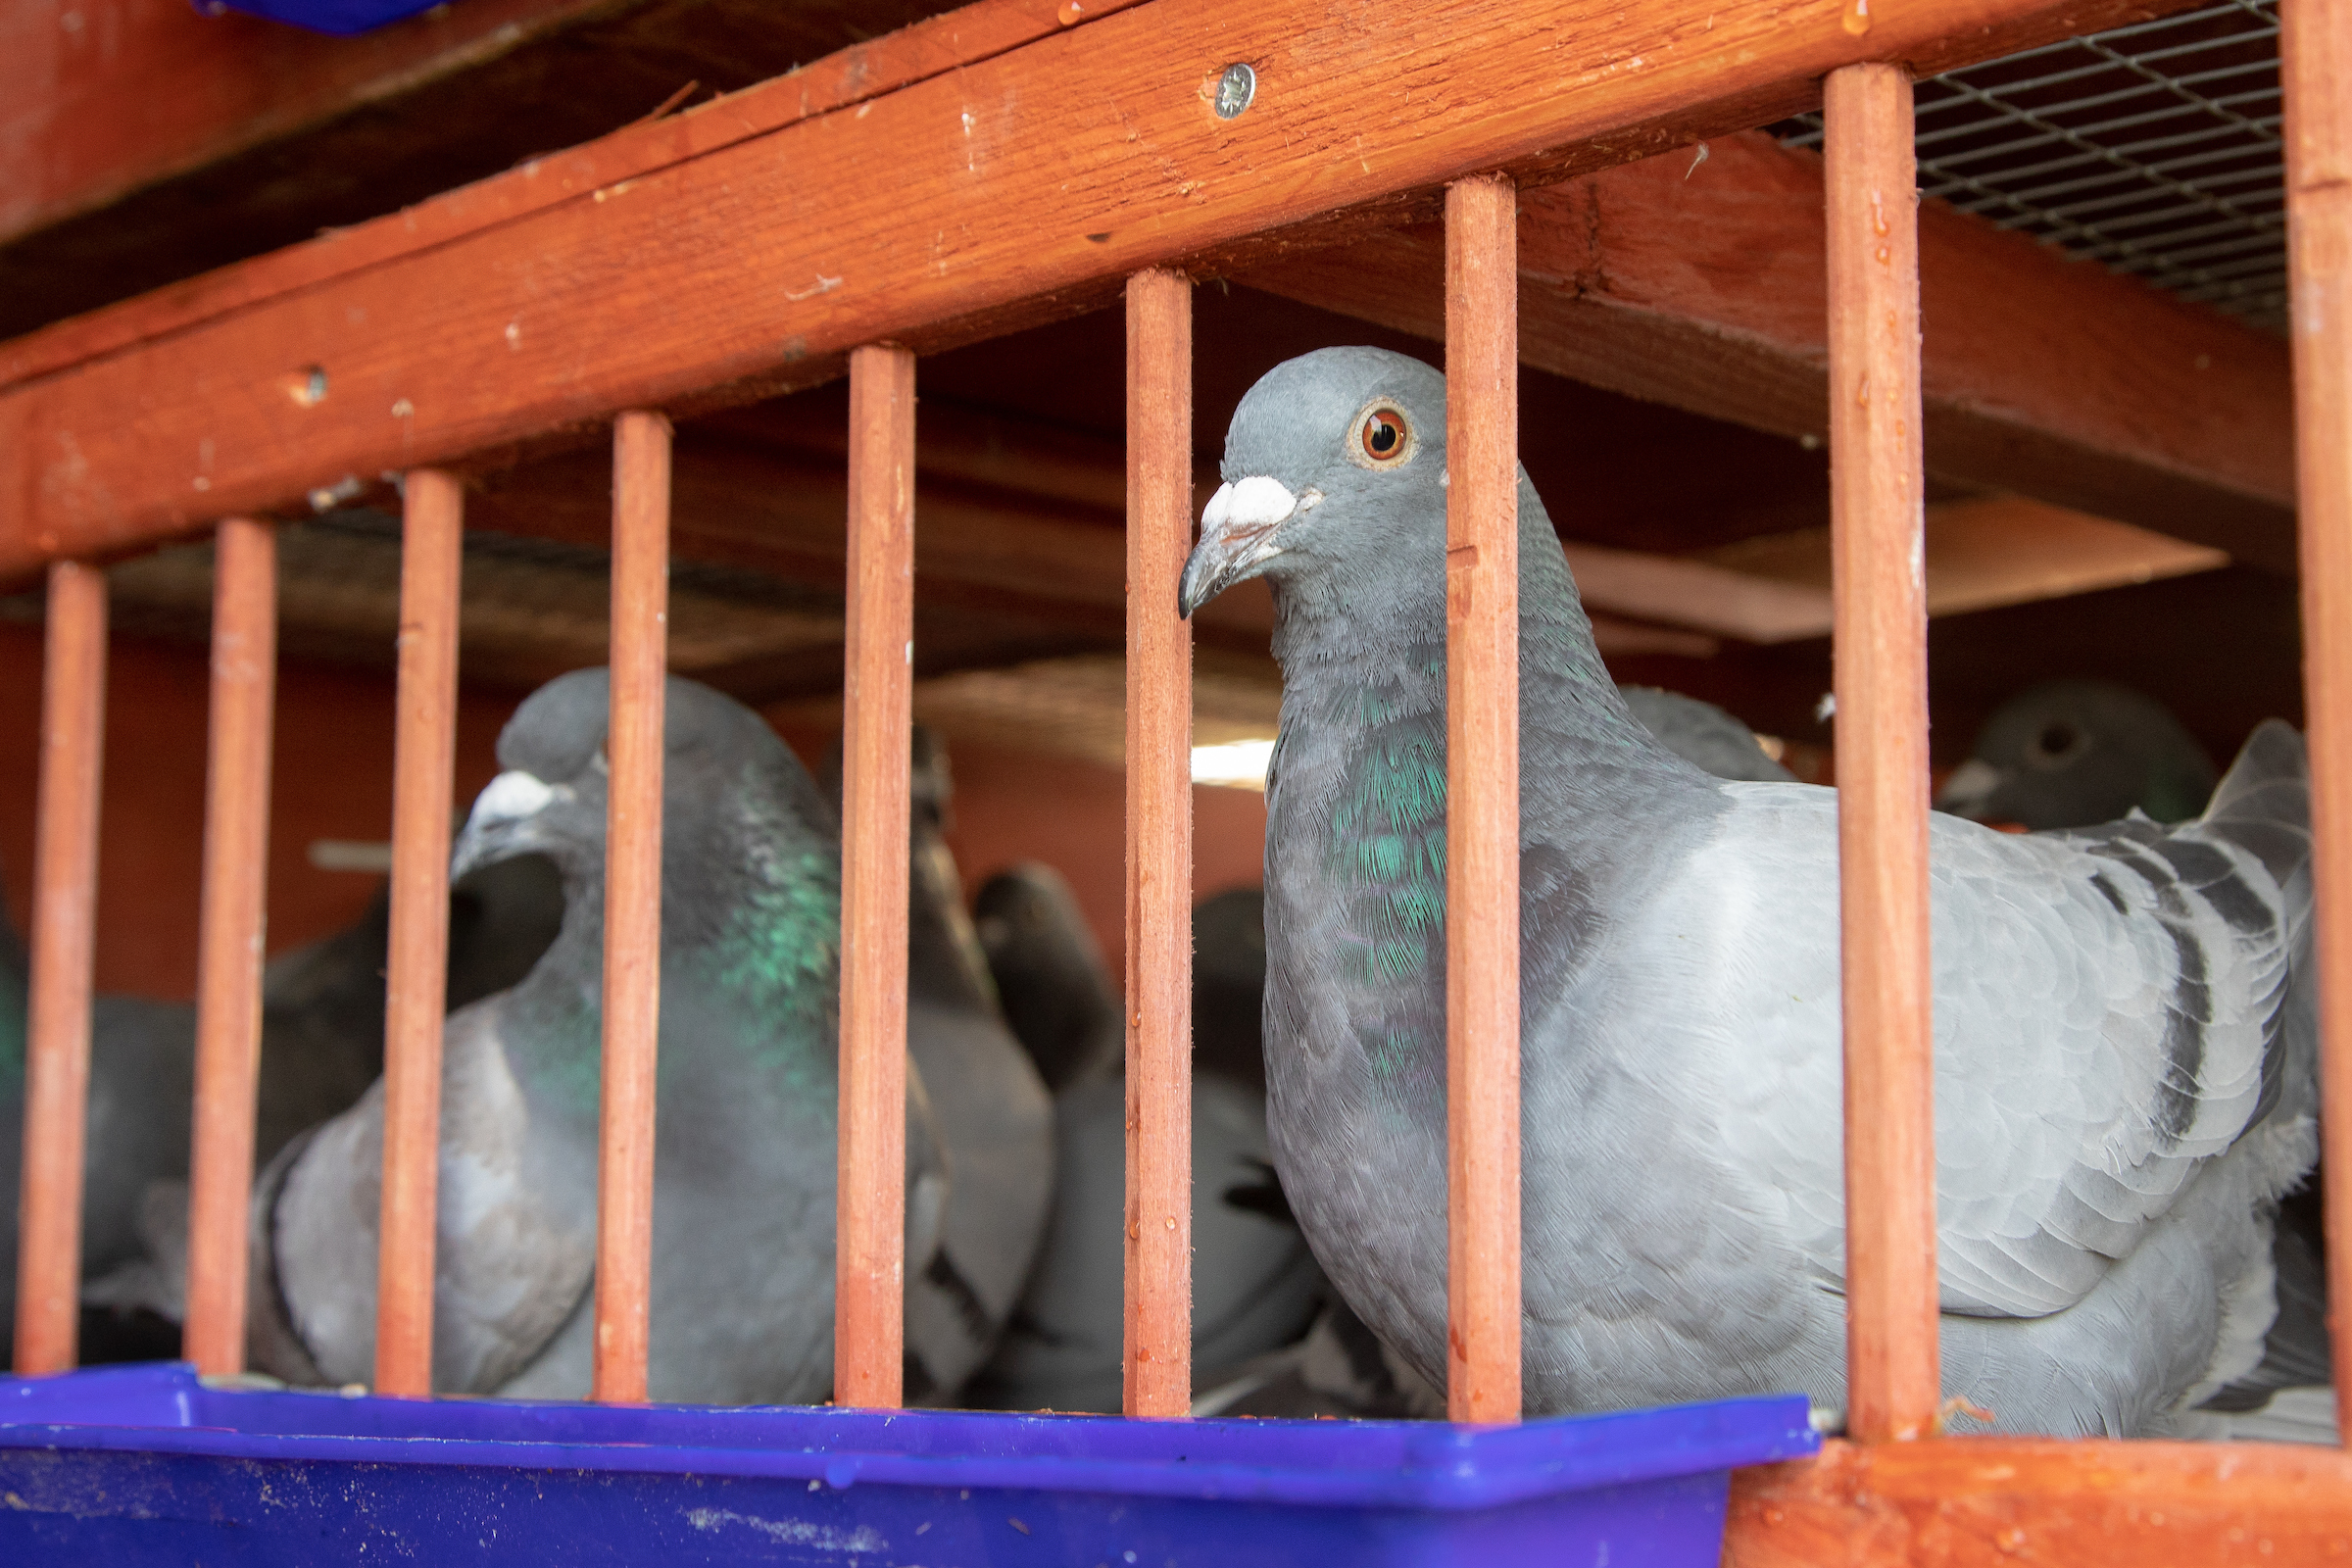 25,000 Pigeon Fanciers Flock to the Royal Pigeon Racing Association's 47th Show!